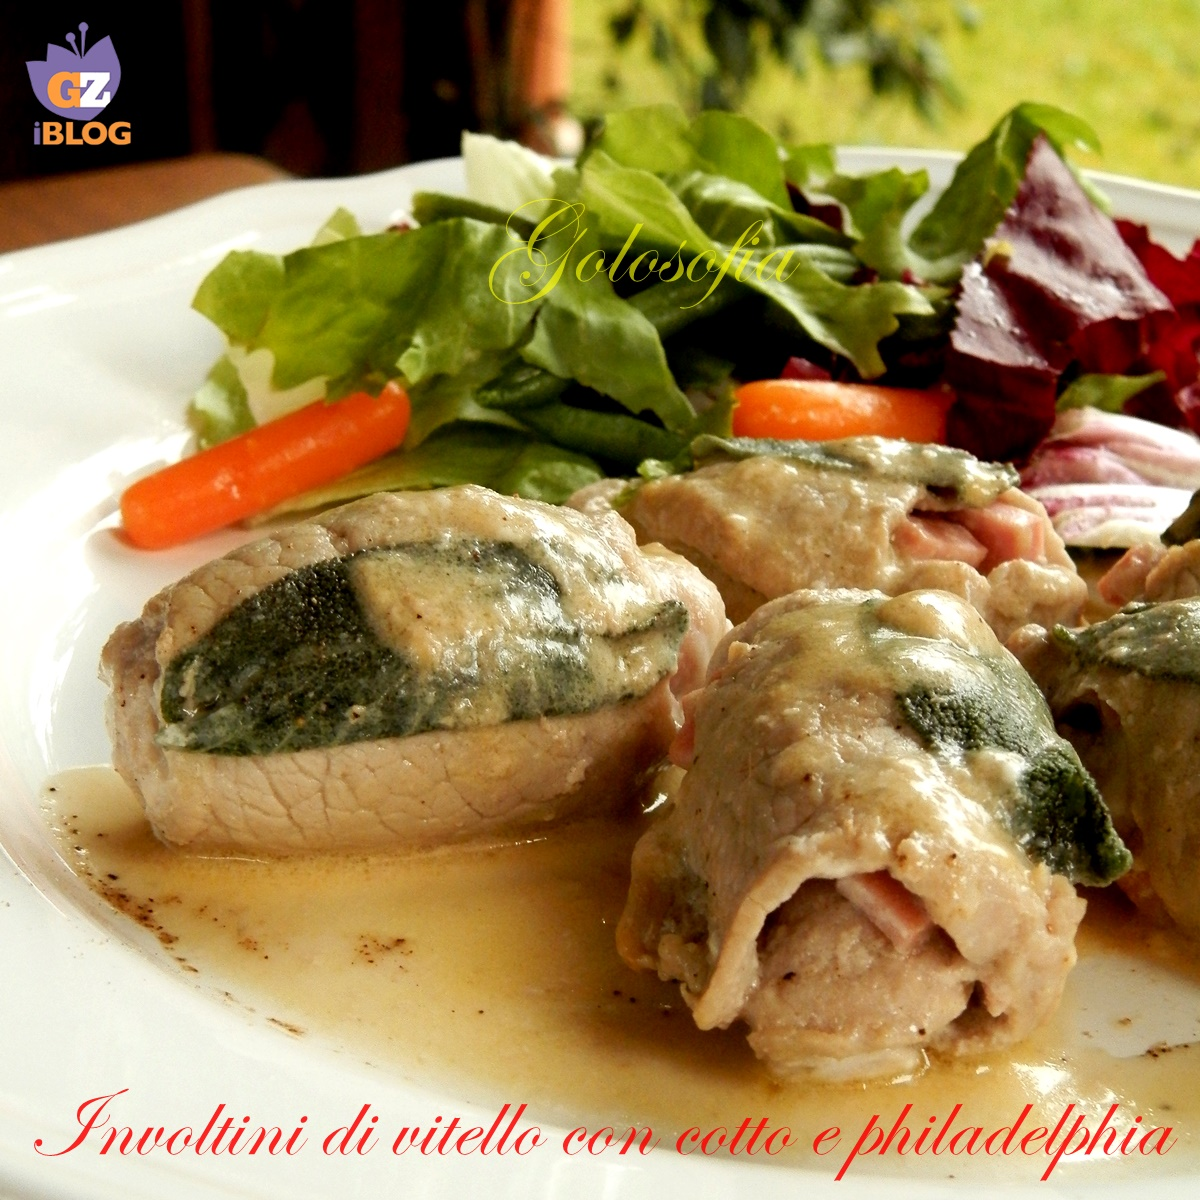 Involtini di vitello con cotto e Philadelphia, ricetta gustosa